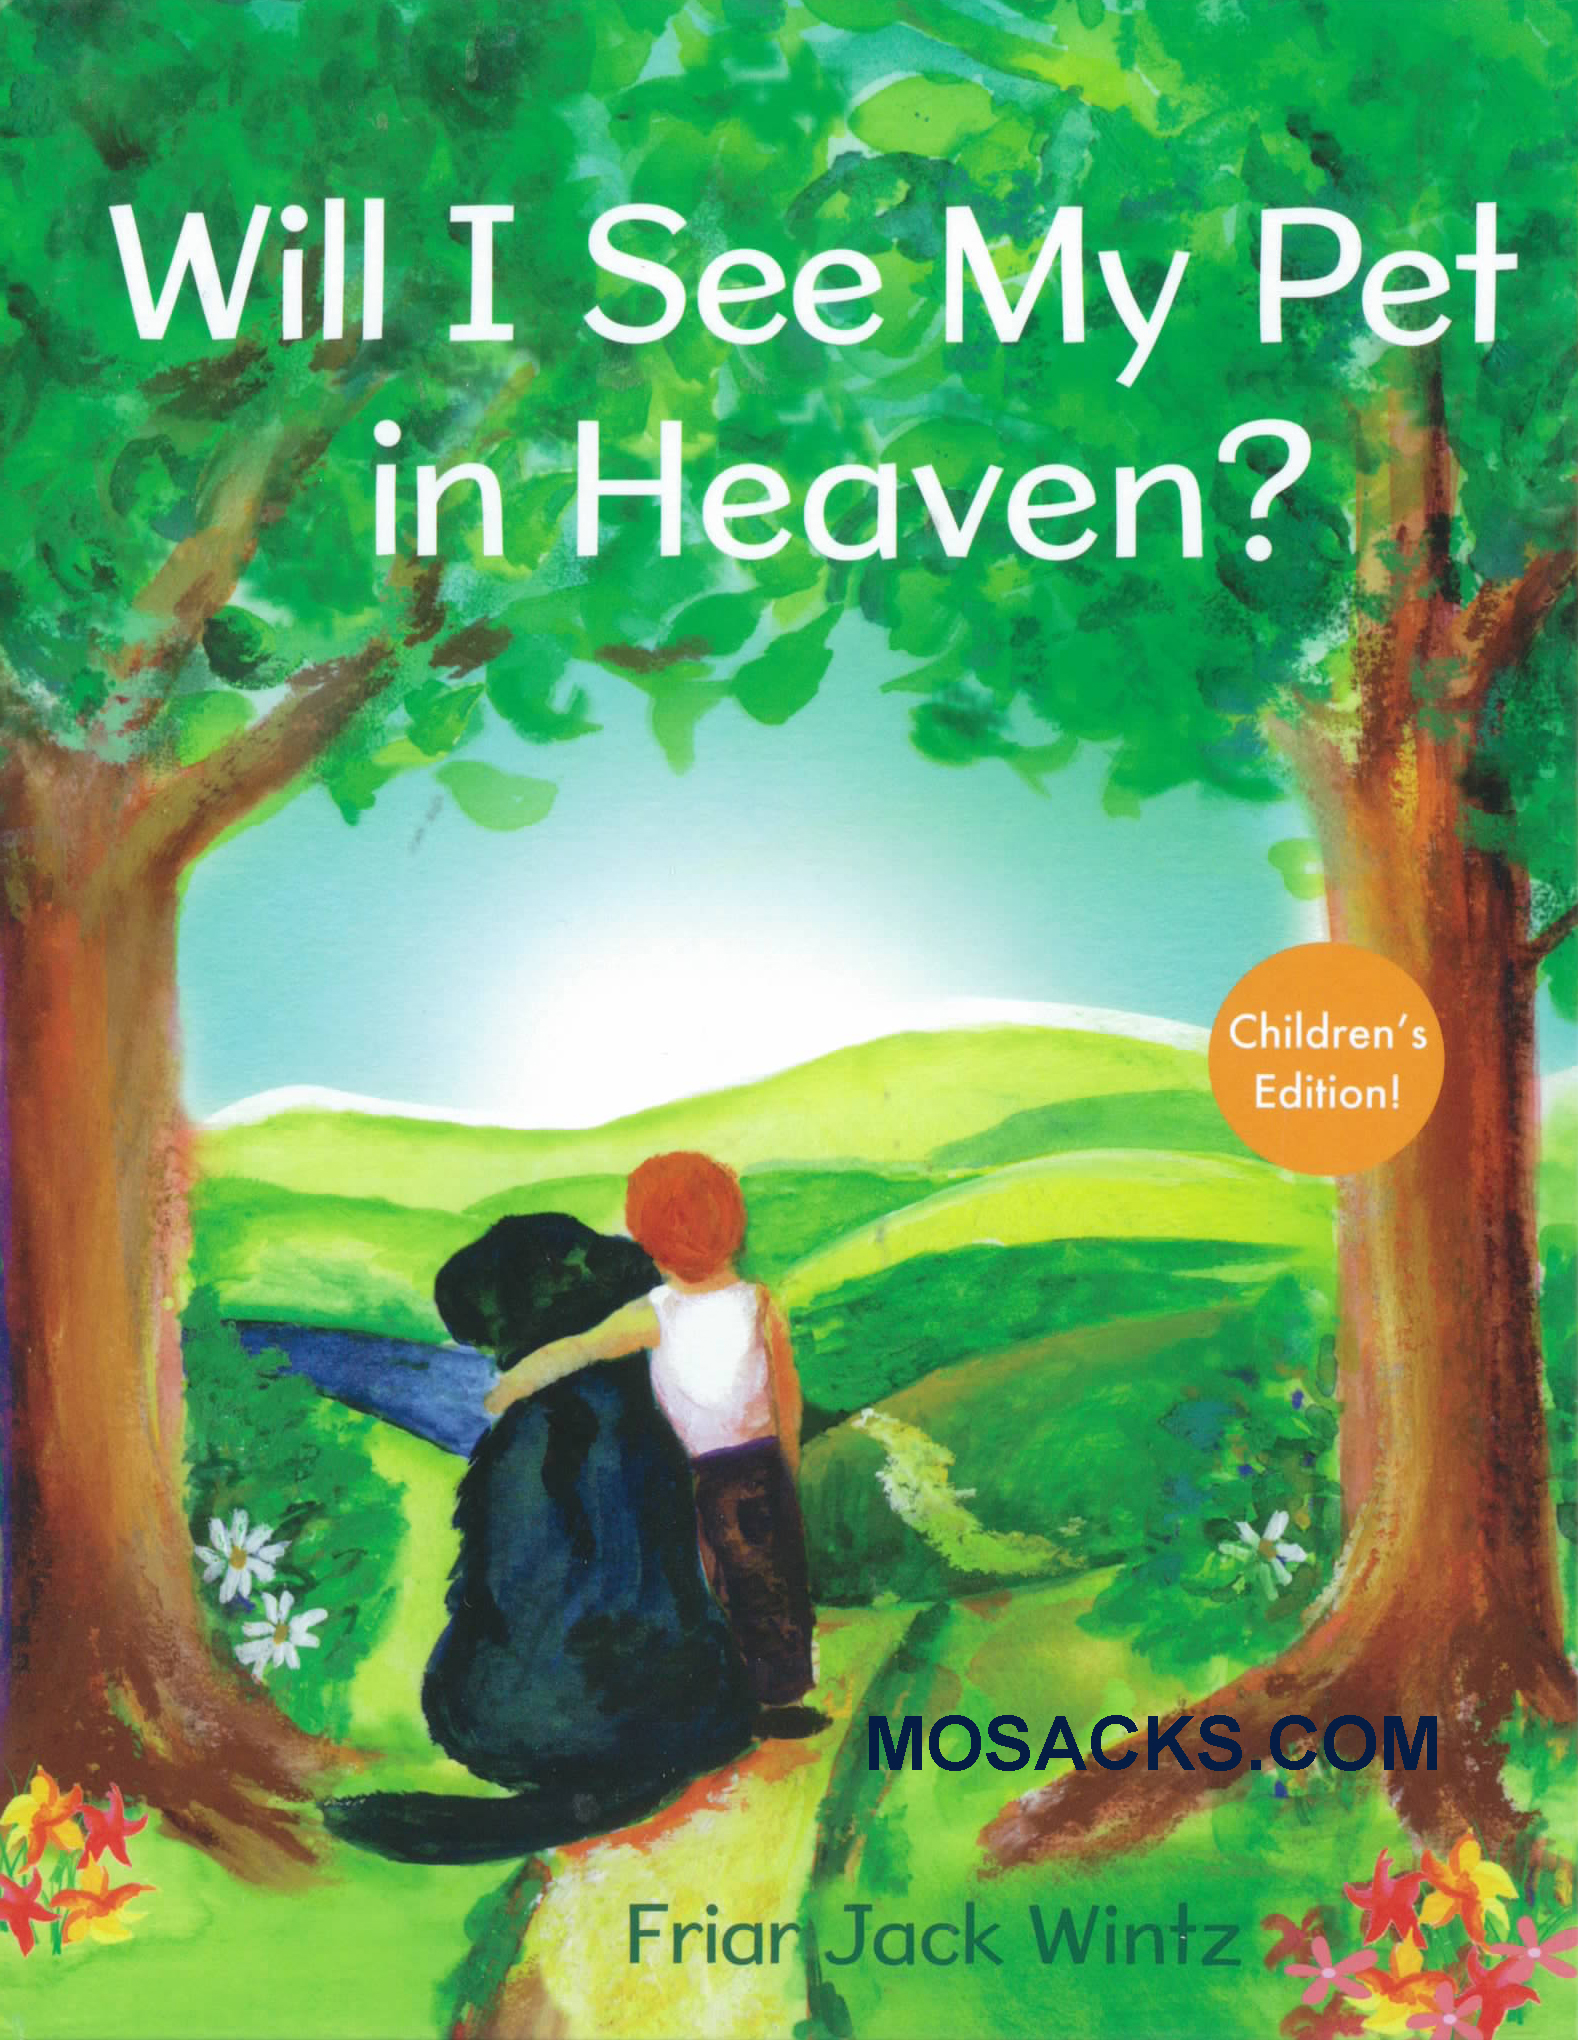 Will I See My Pet in Heaven? Children's Edition, 9781612610986